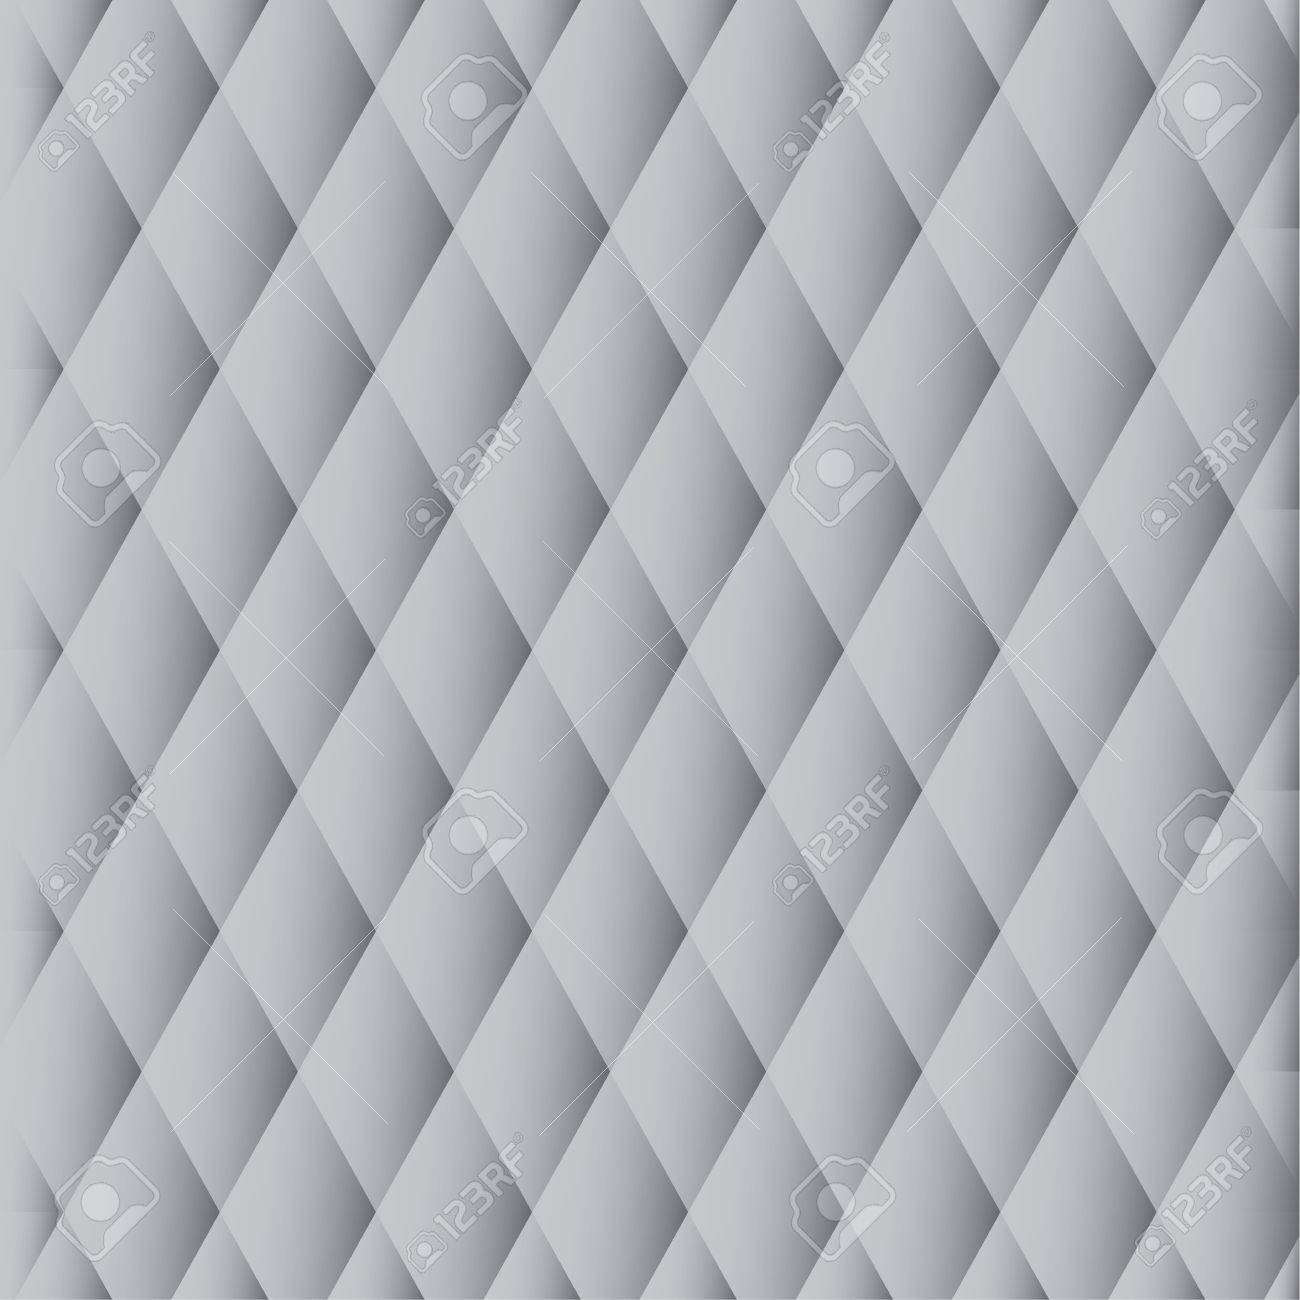 Abstract monochrome pattern of gray diamonds Stock Vector - 10981430